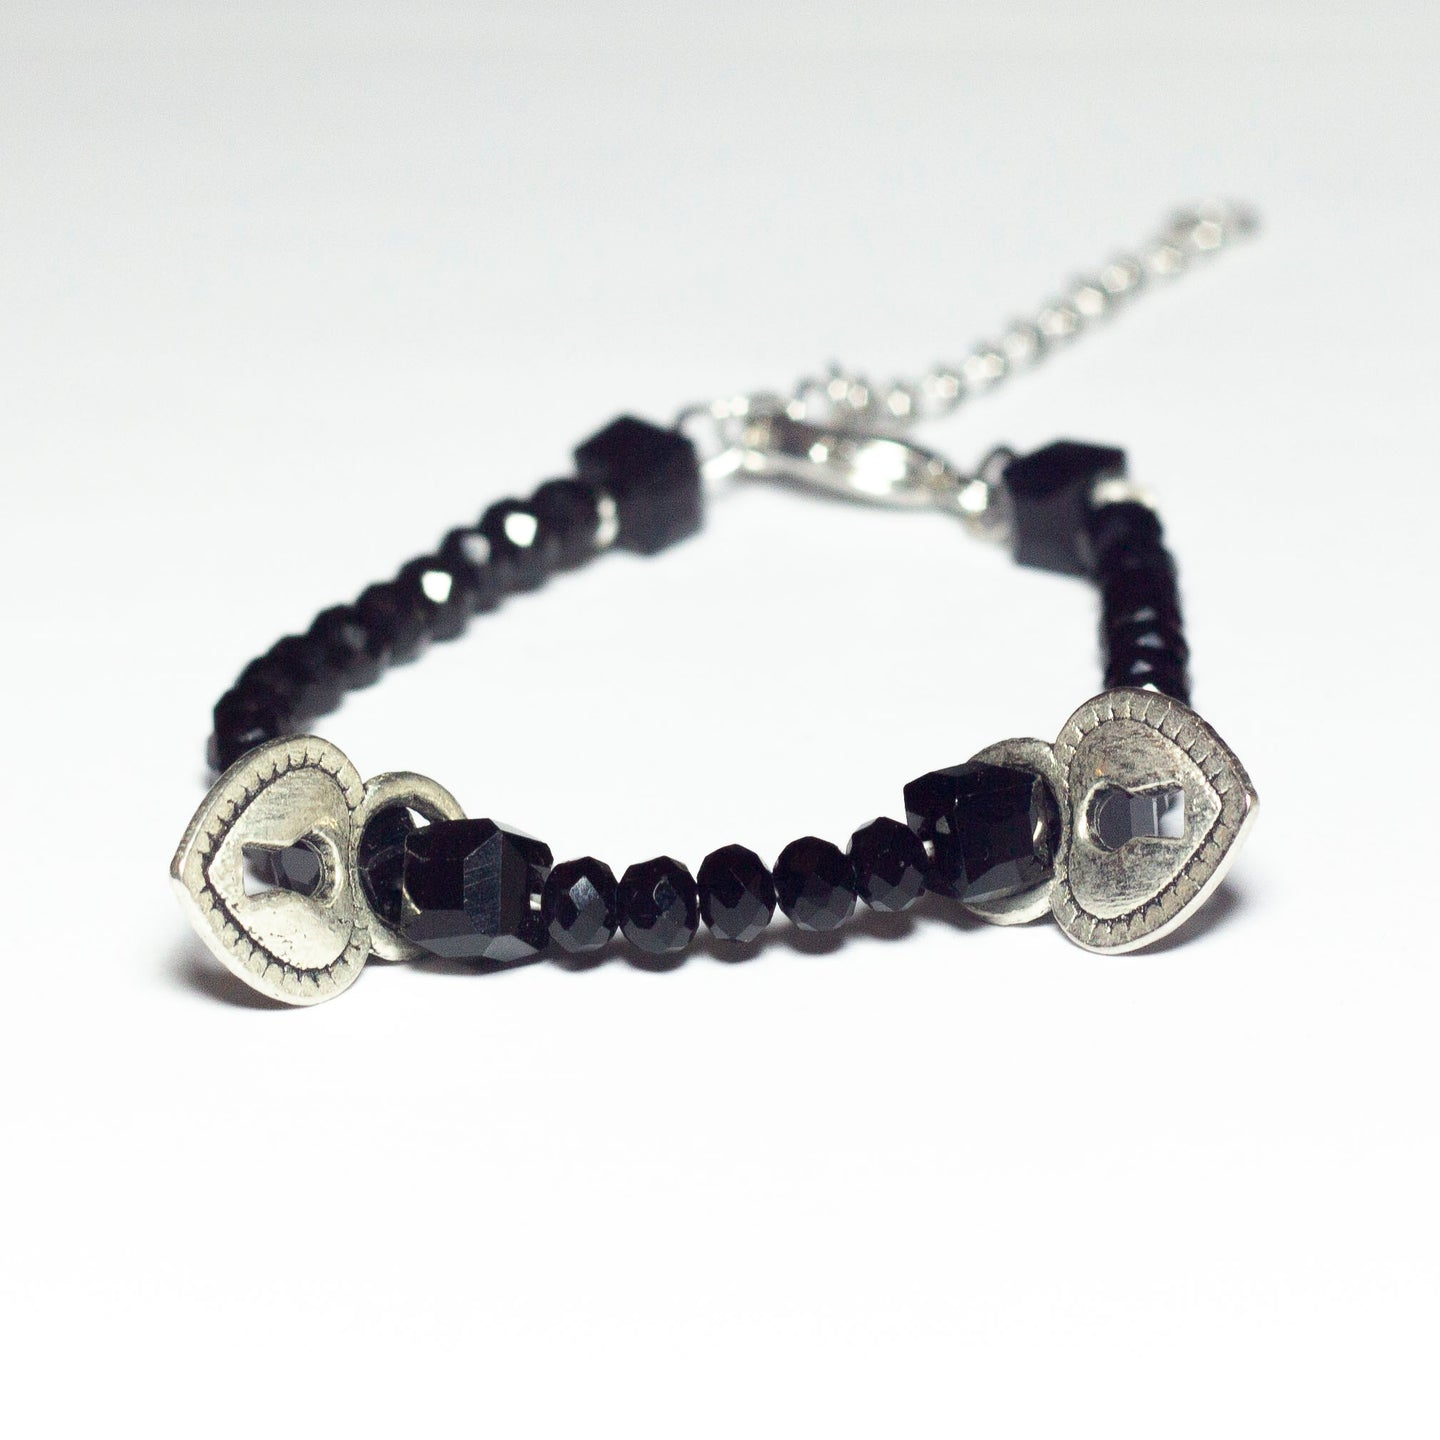 black beaded bracelet with heart locket pendants and chain clasp